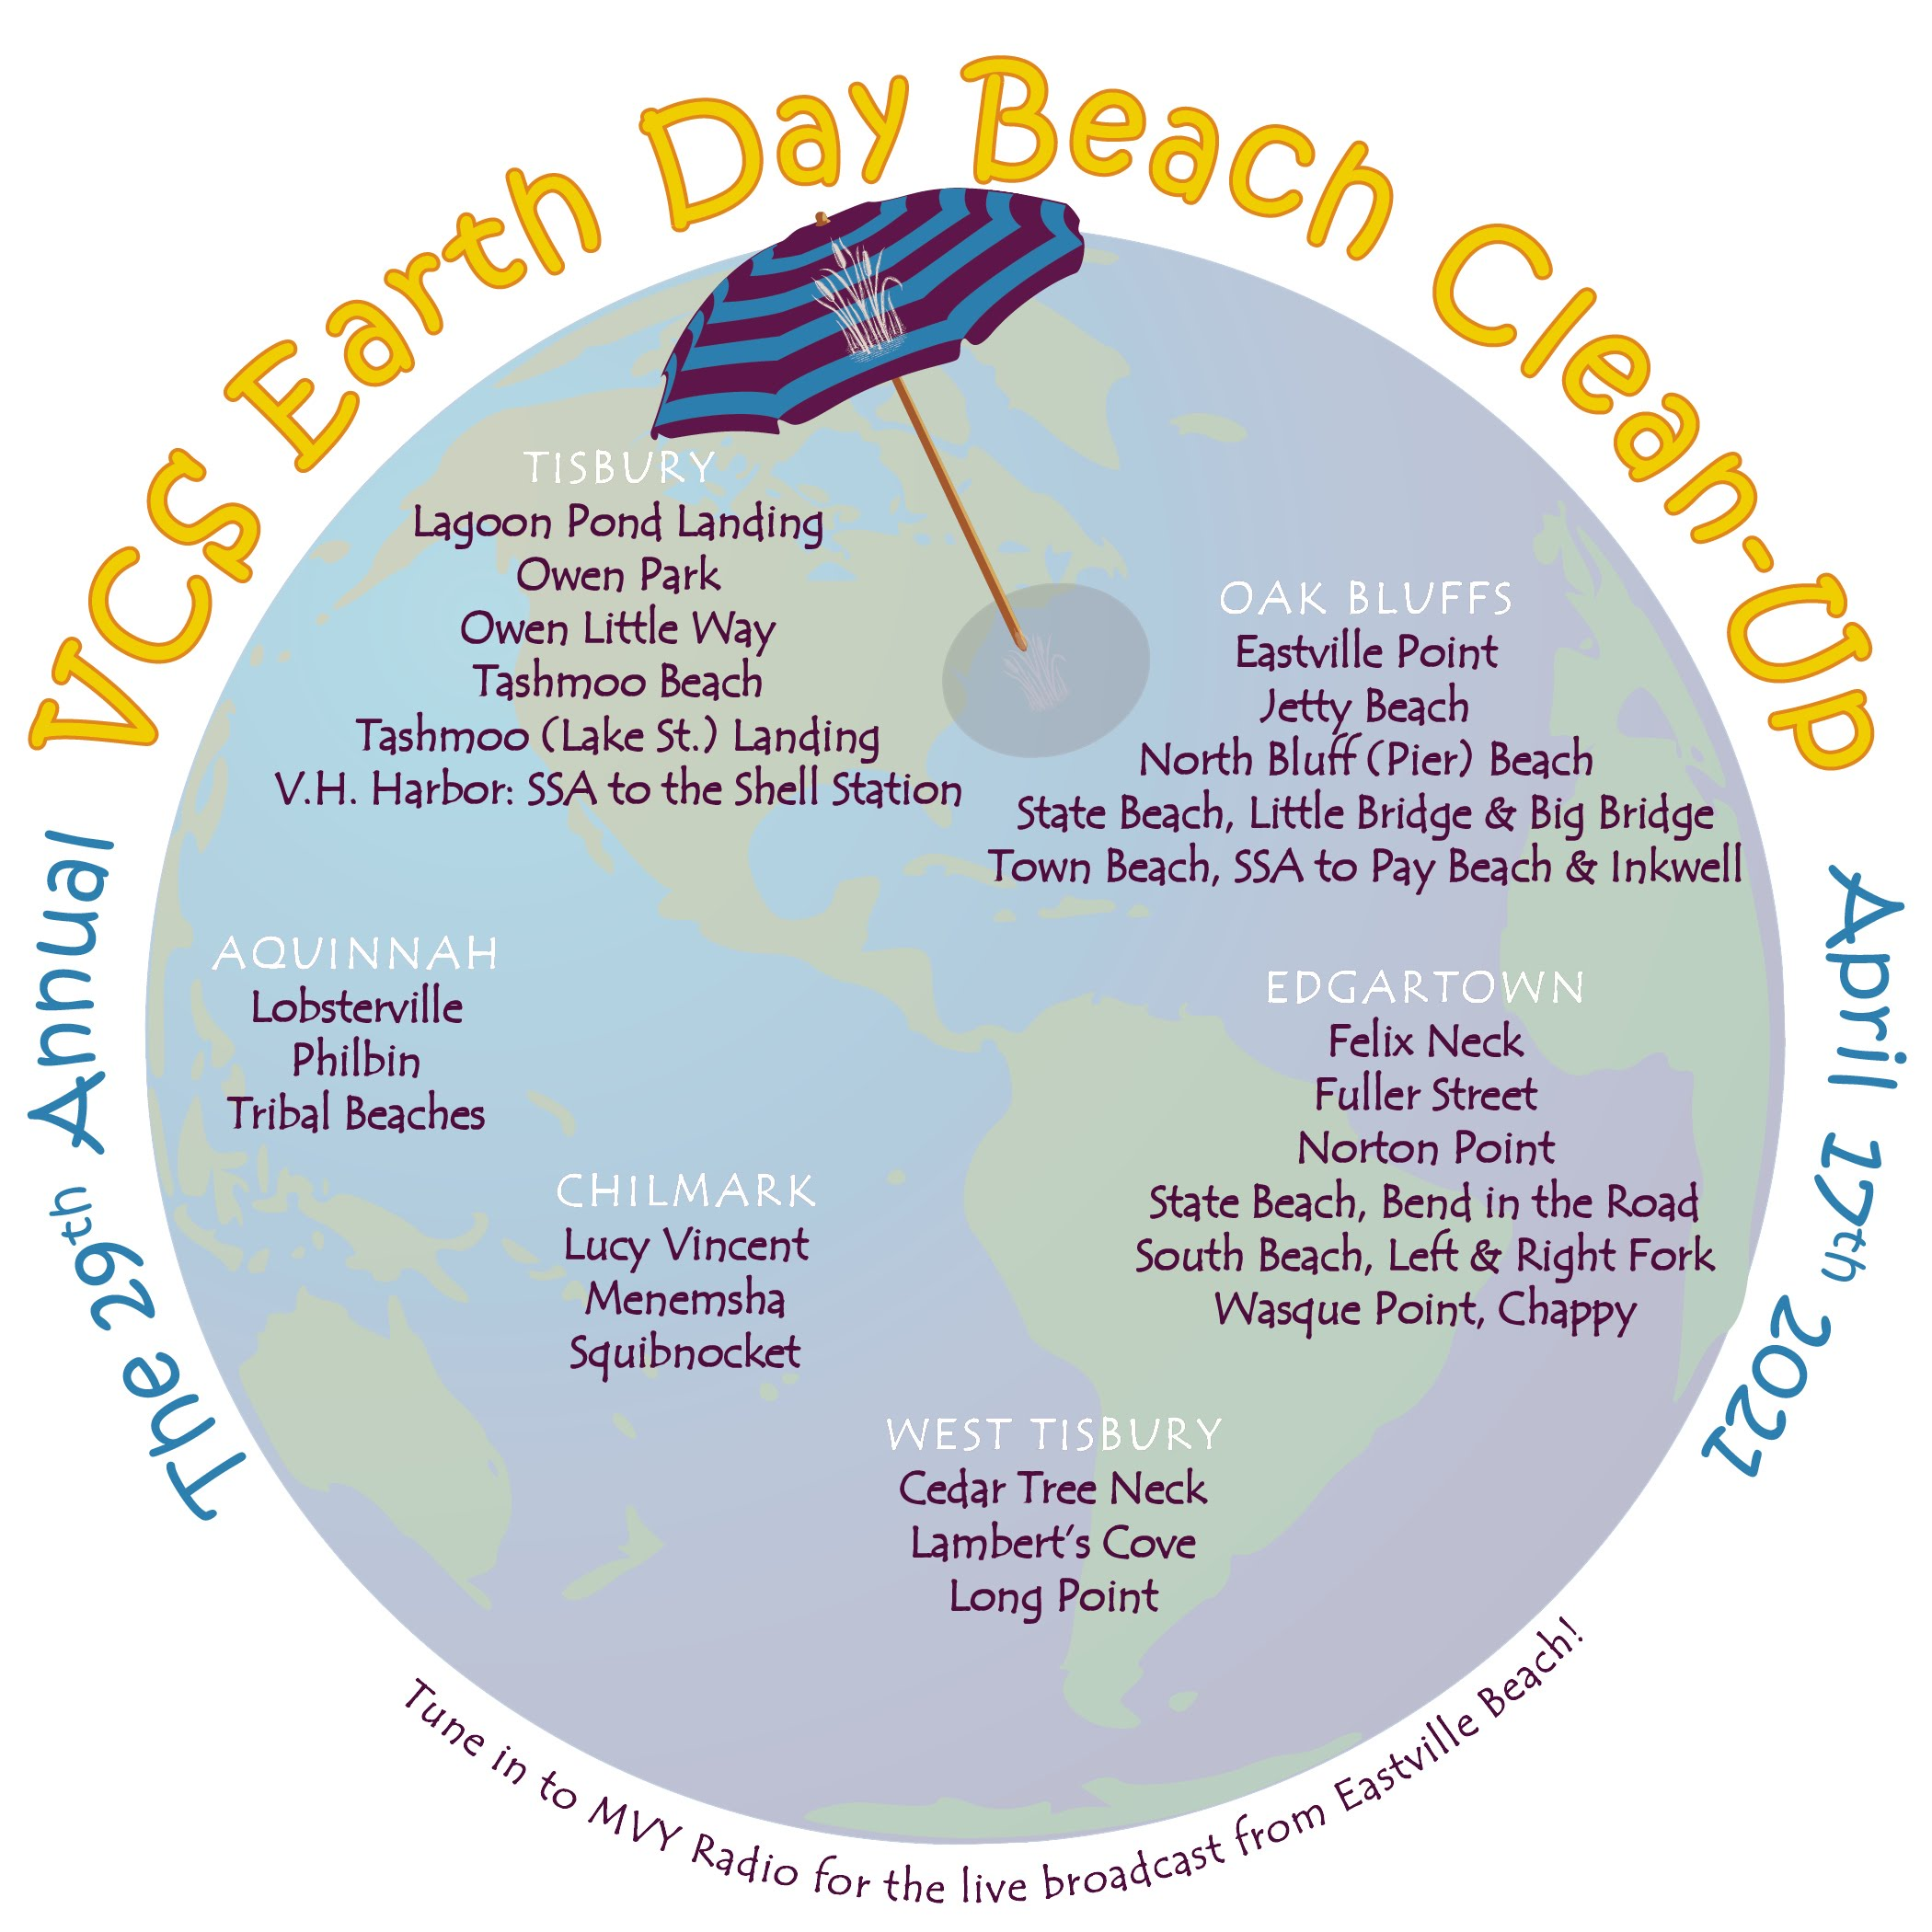 The Earth Day Beach Clean-Up